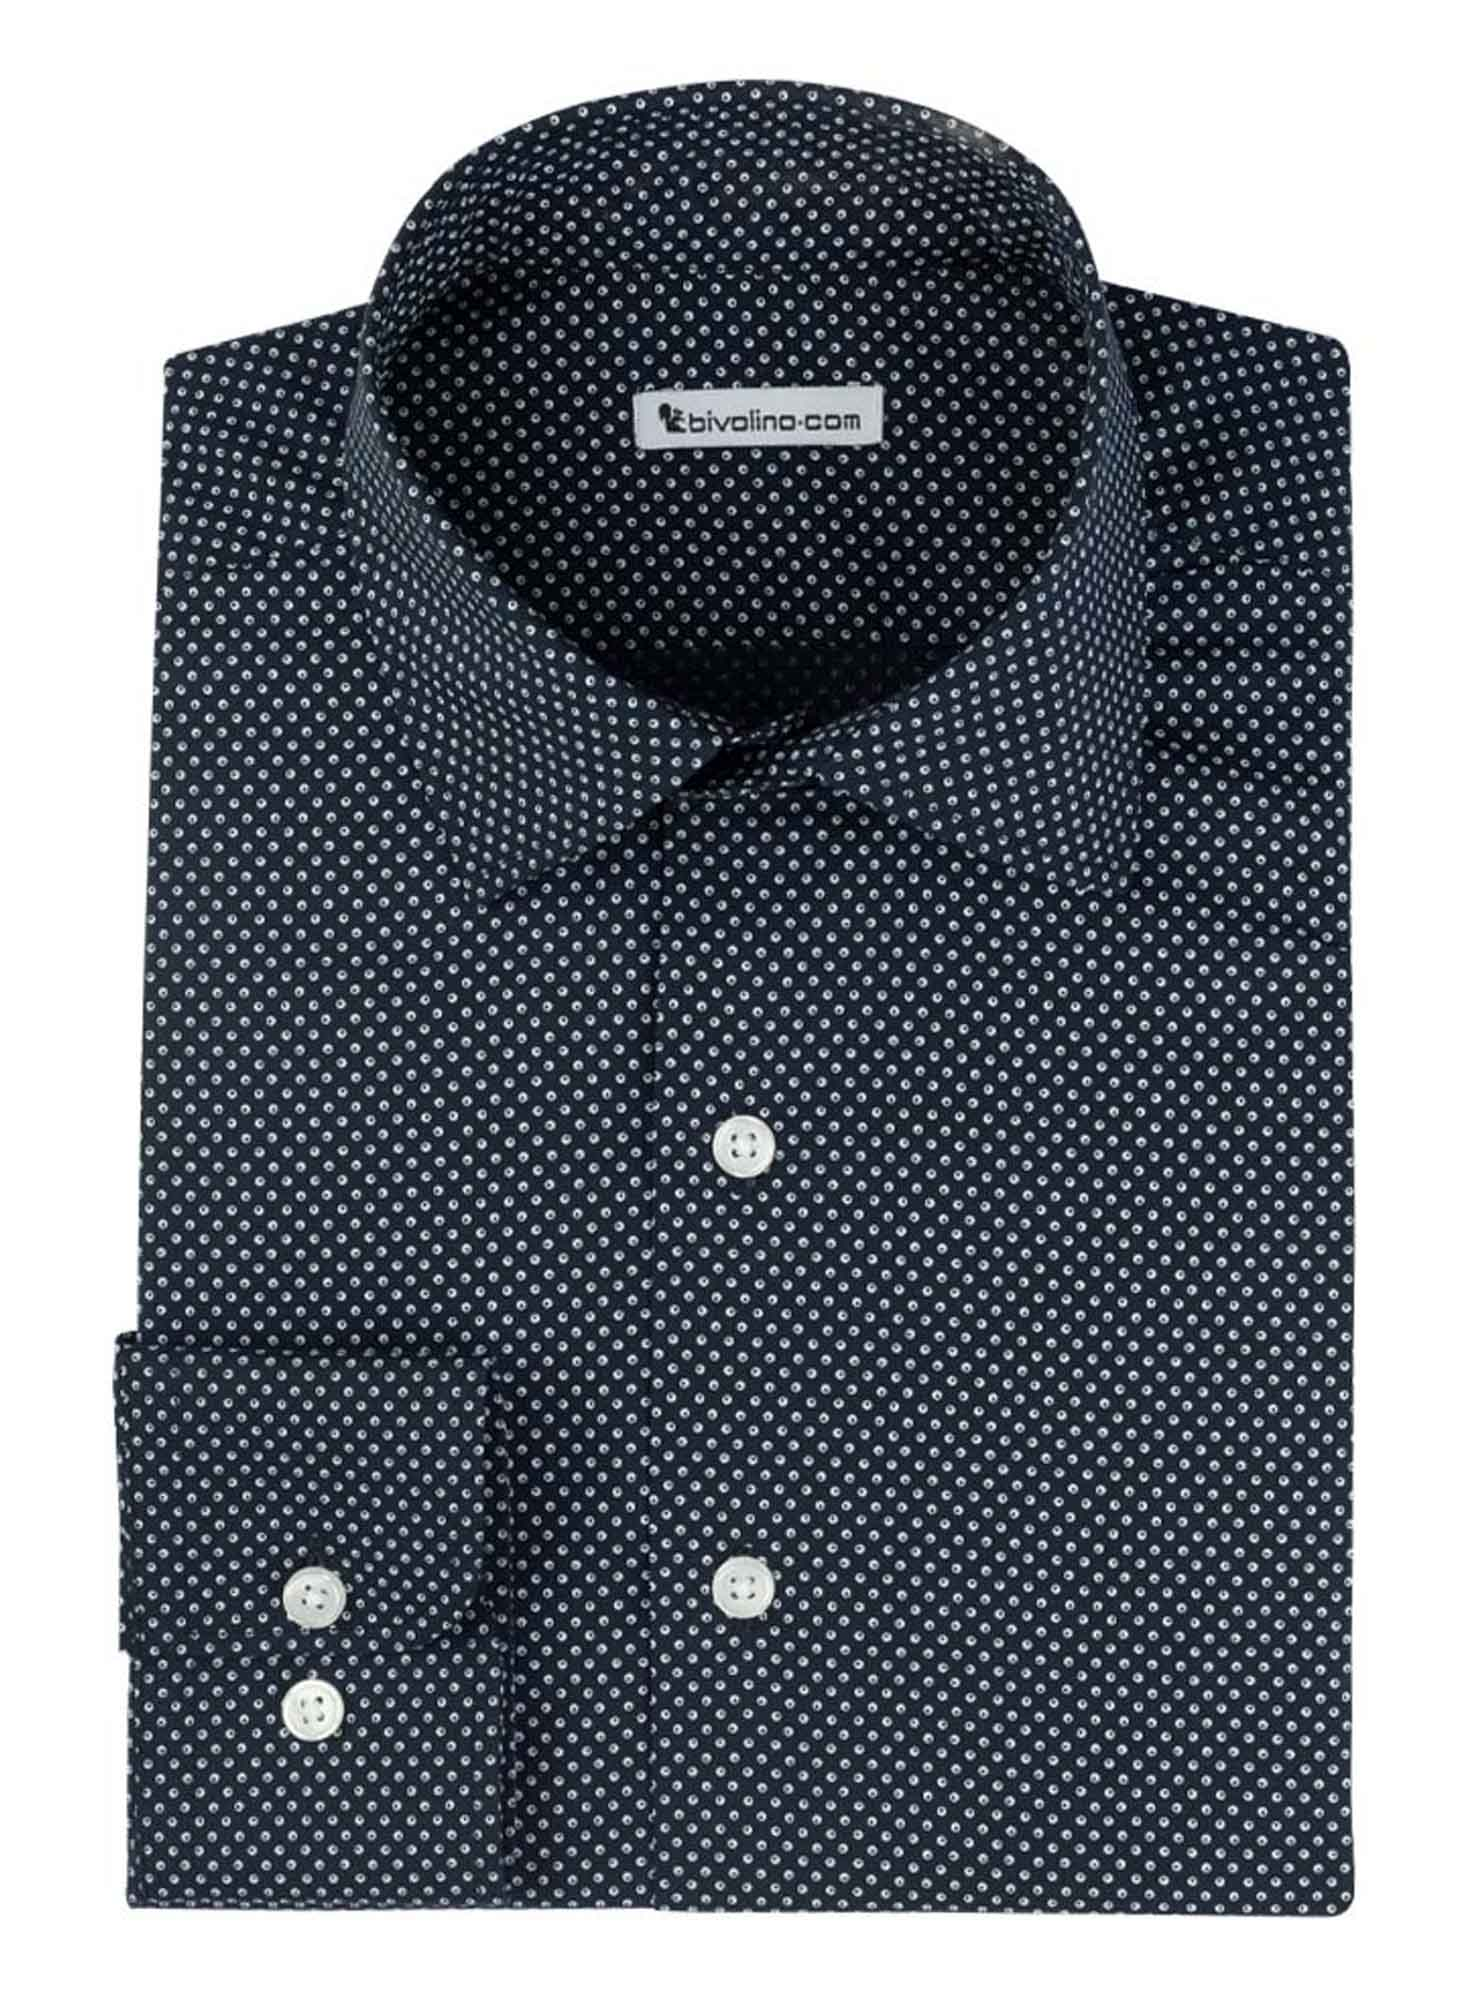 LARIANO  - chemise homme coton Micro-Print pointillé - MICRO 8